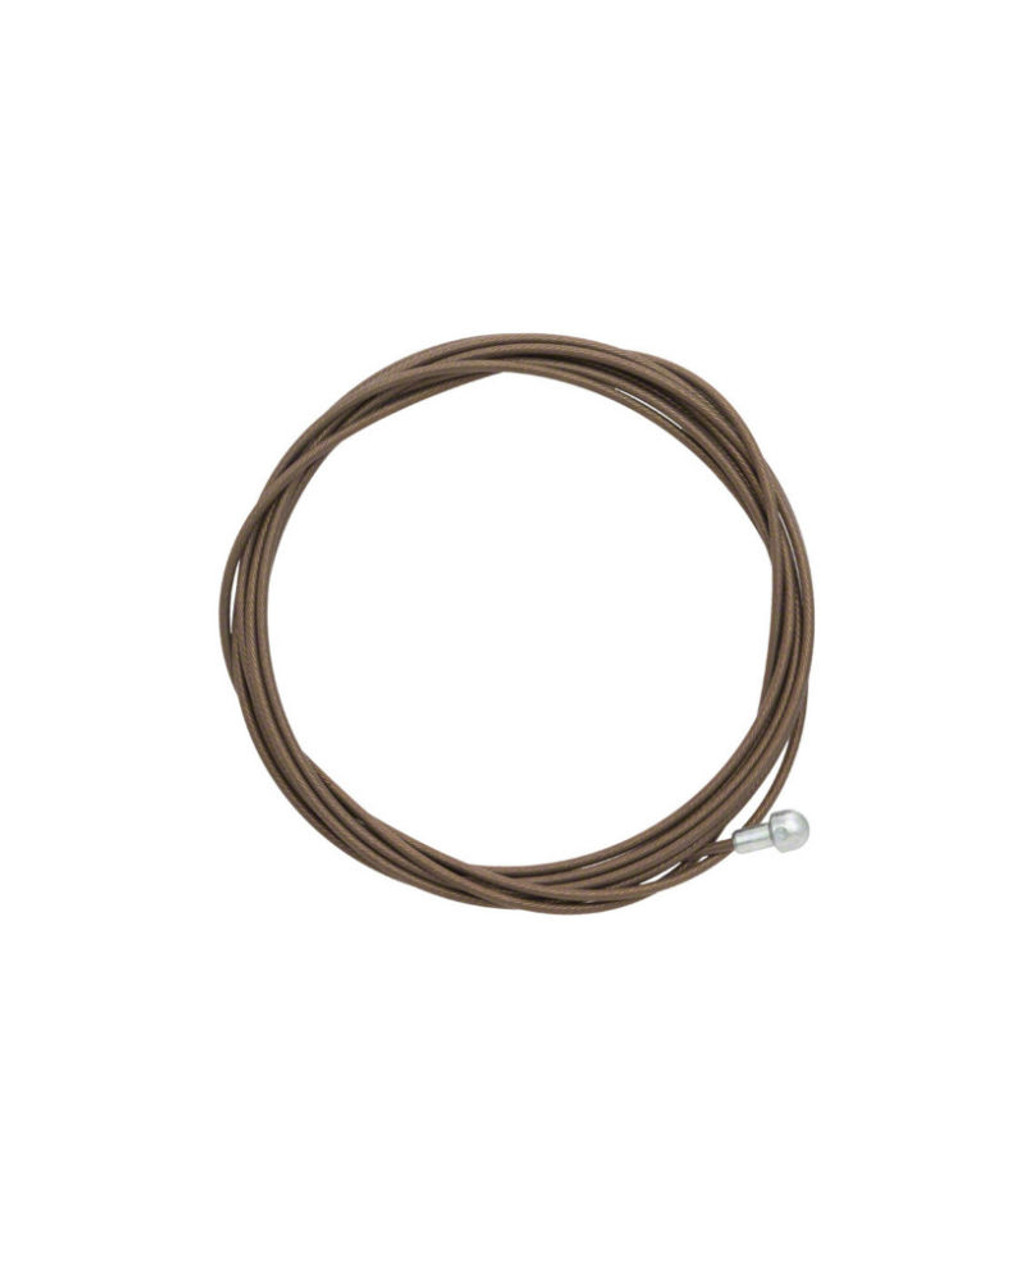 SHIMANO DURA-ACE 9000 POLYMER-COATED ROAD BICYCLE BLACK BRAKE CABLE KIT